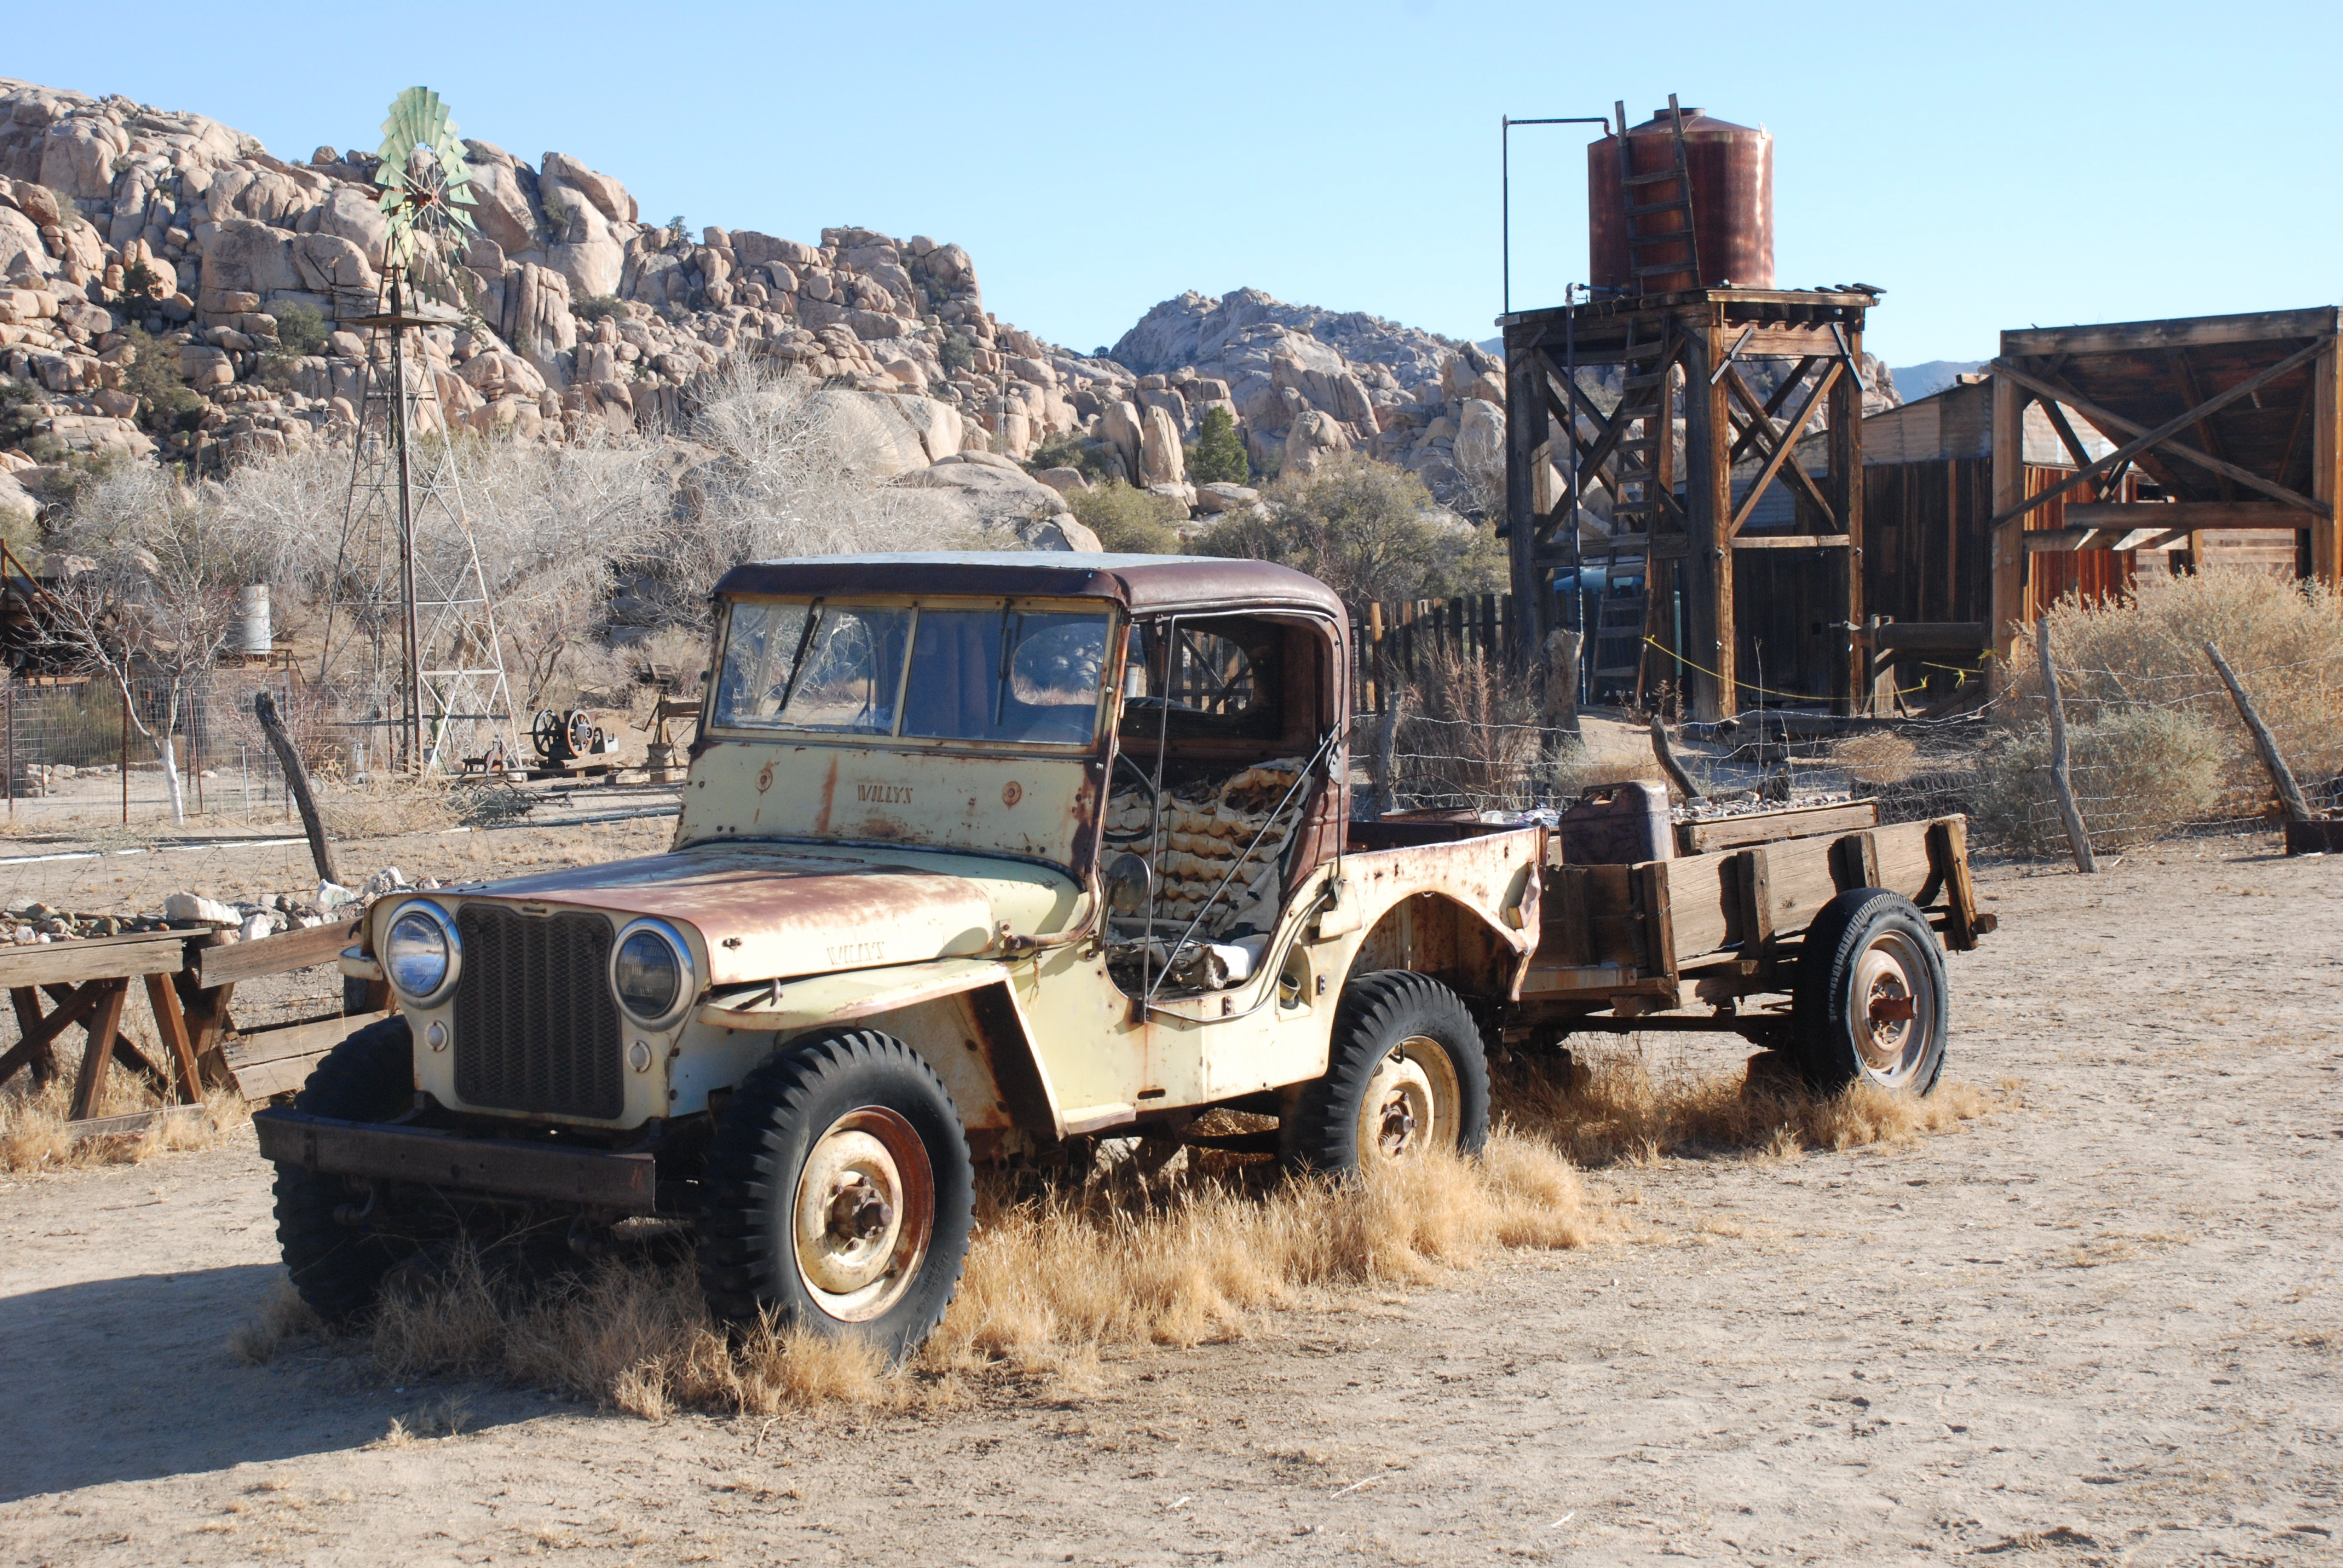 1979 Jeep Cj7 Parts File:Desert Queen Ranch - Willy's Jeep.jpg - Wikimedia Commons